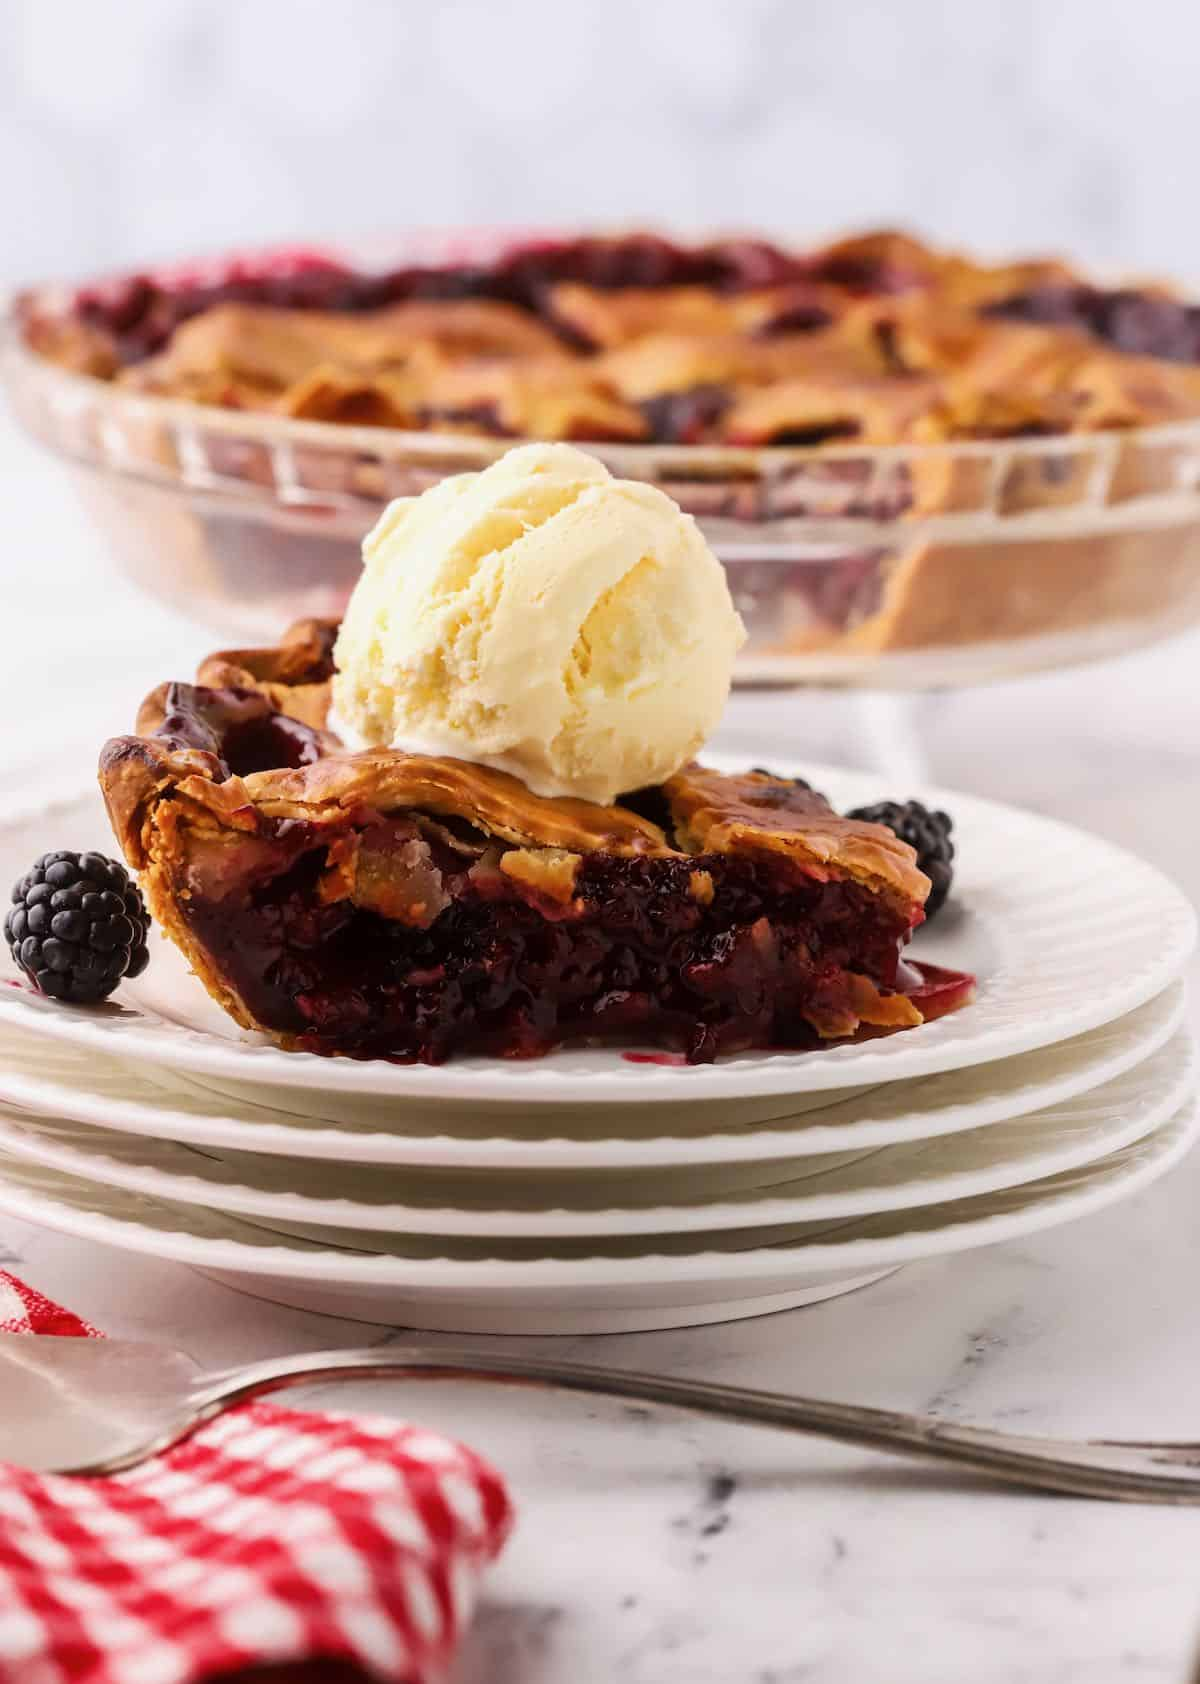 A slice of blackberry pie topped with a scoop of vanilla ice cream.